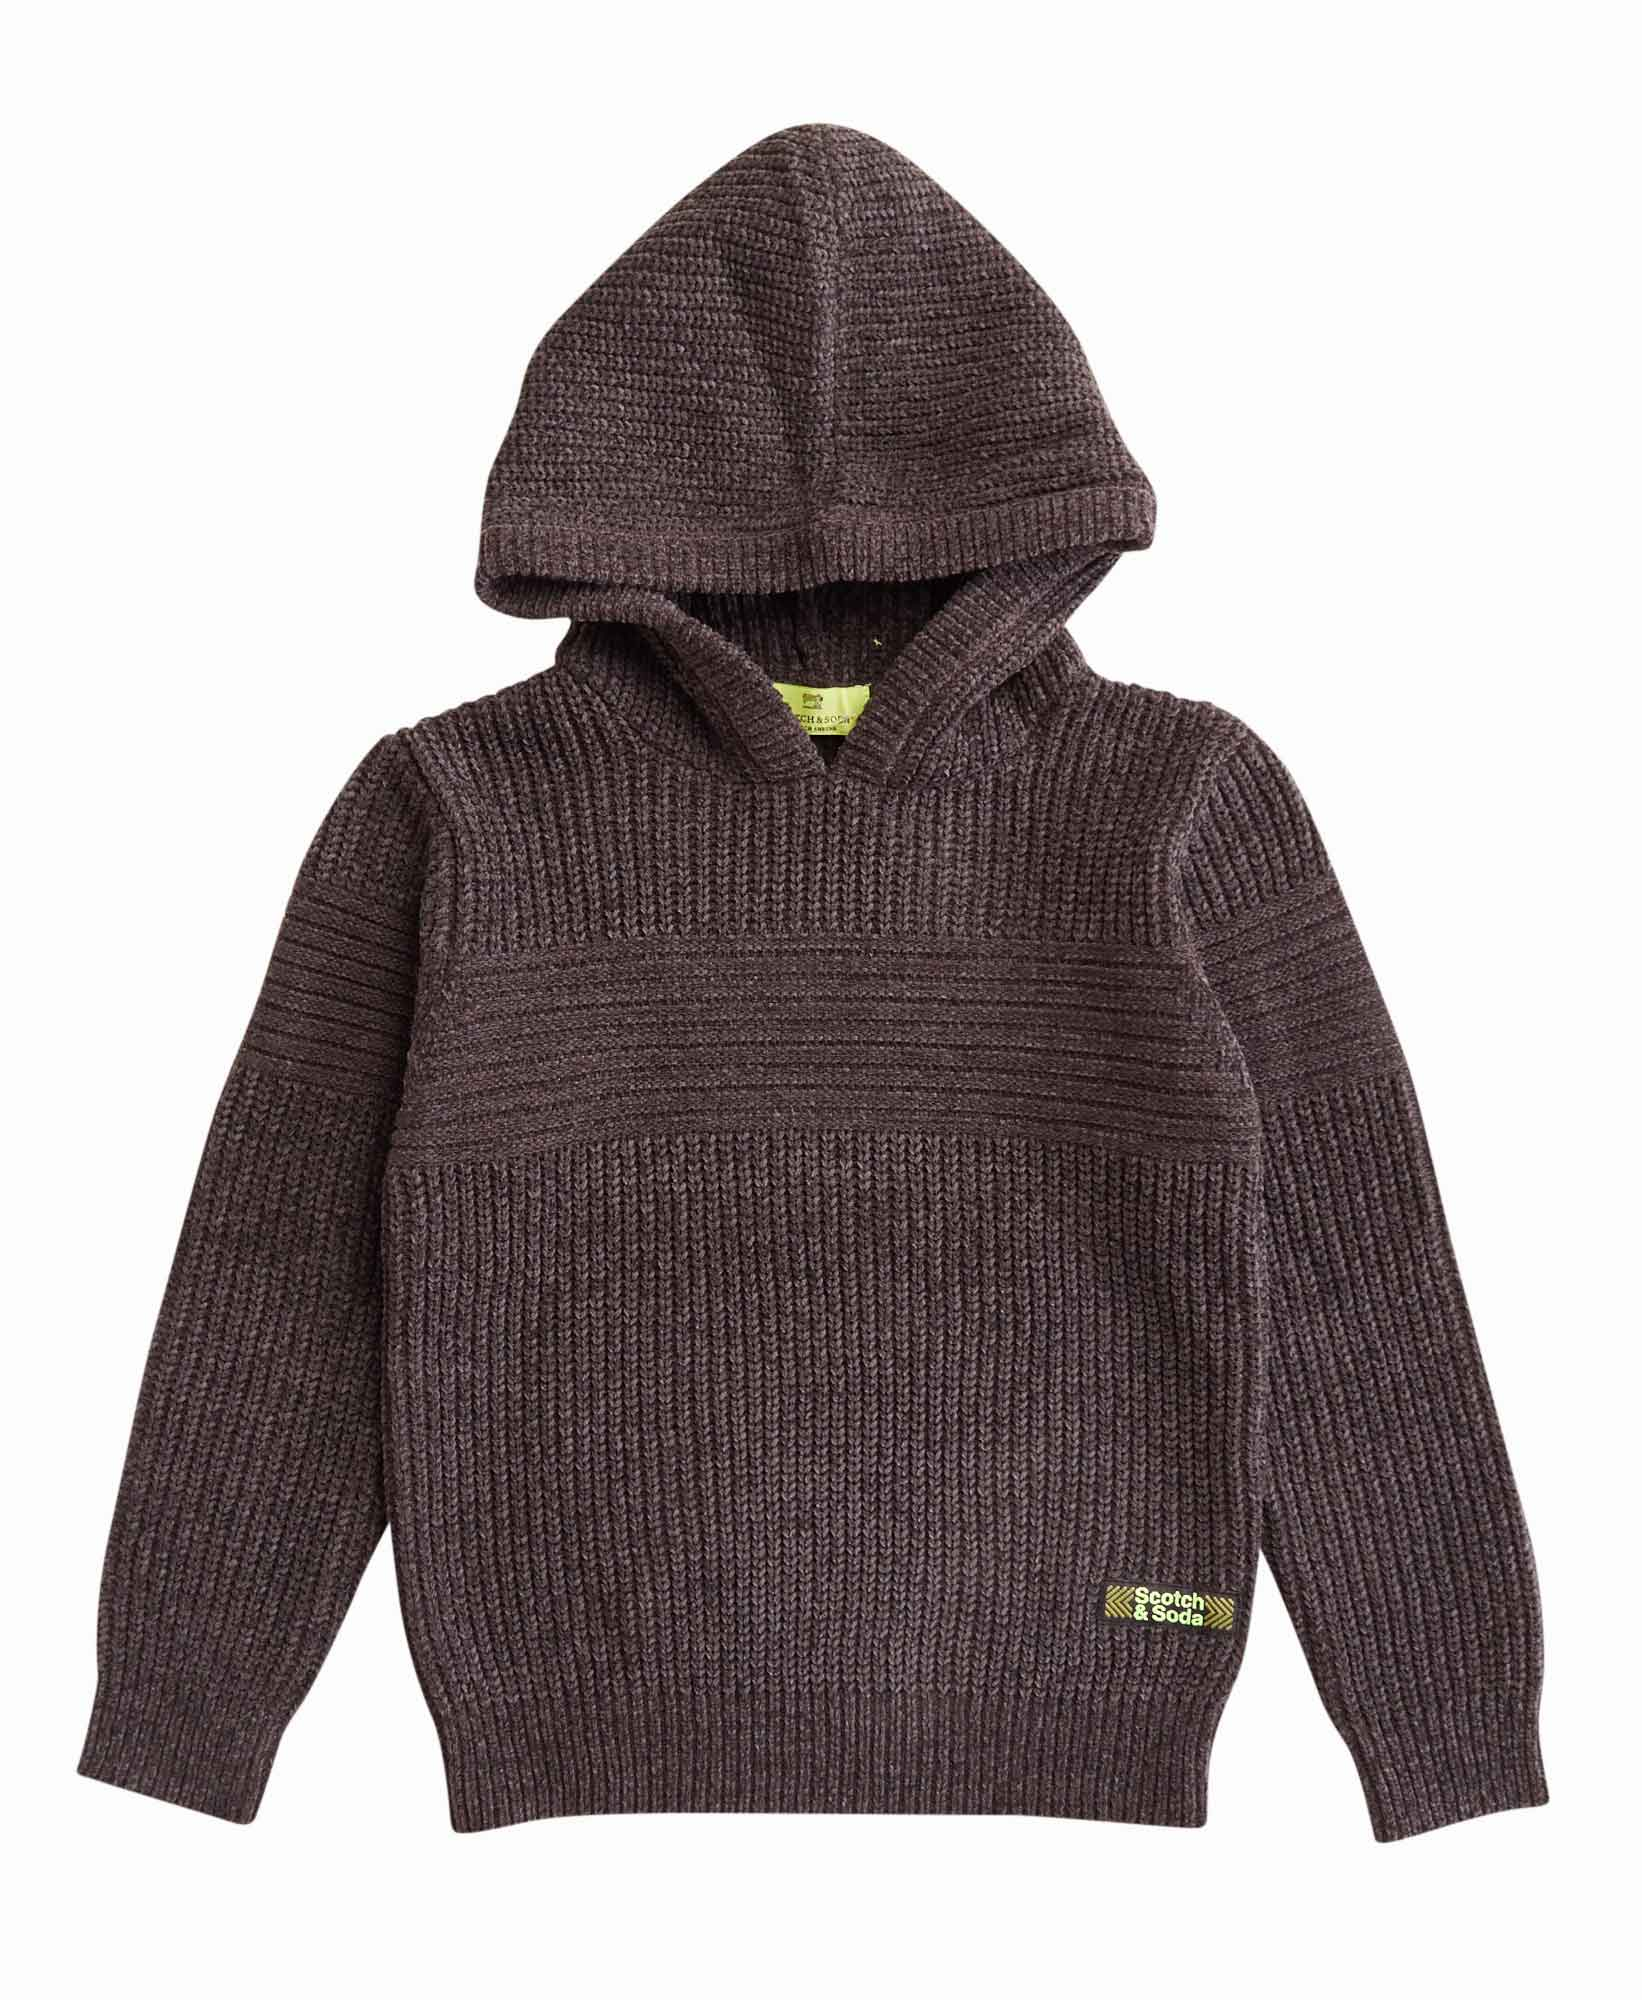 Scotch & Soda Ribbed Hoodie Sweater